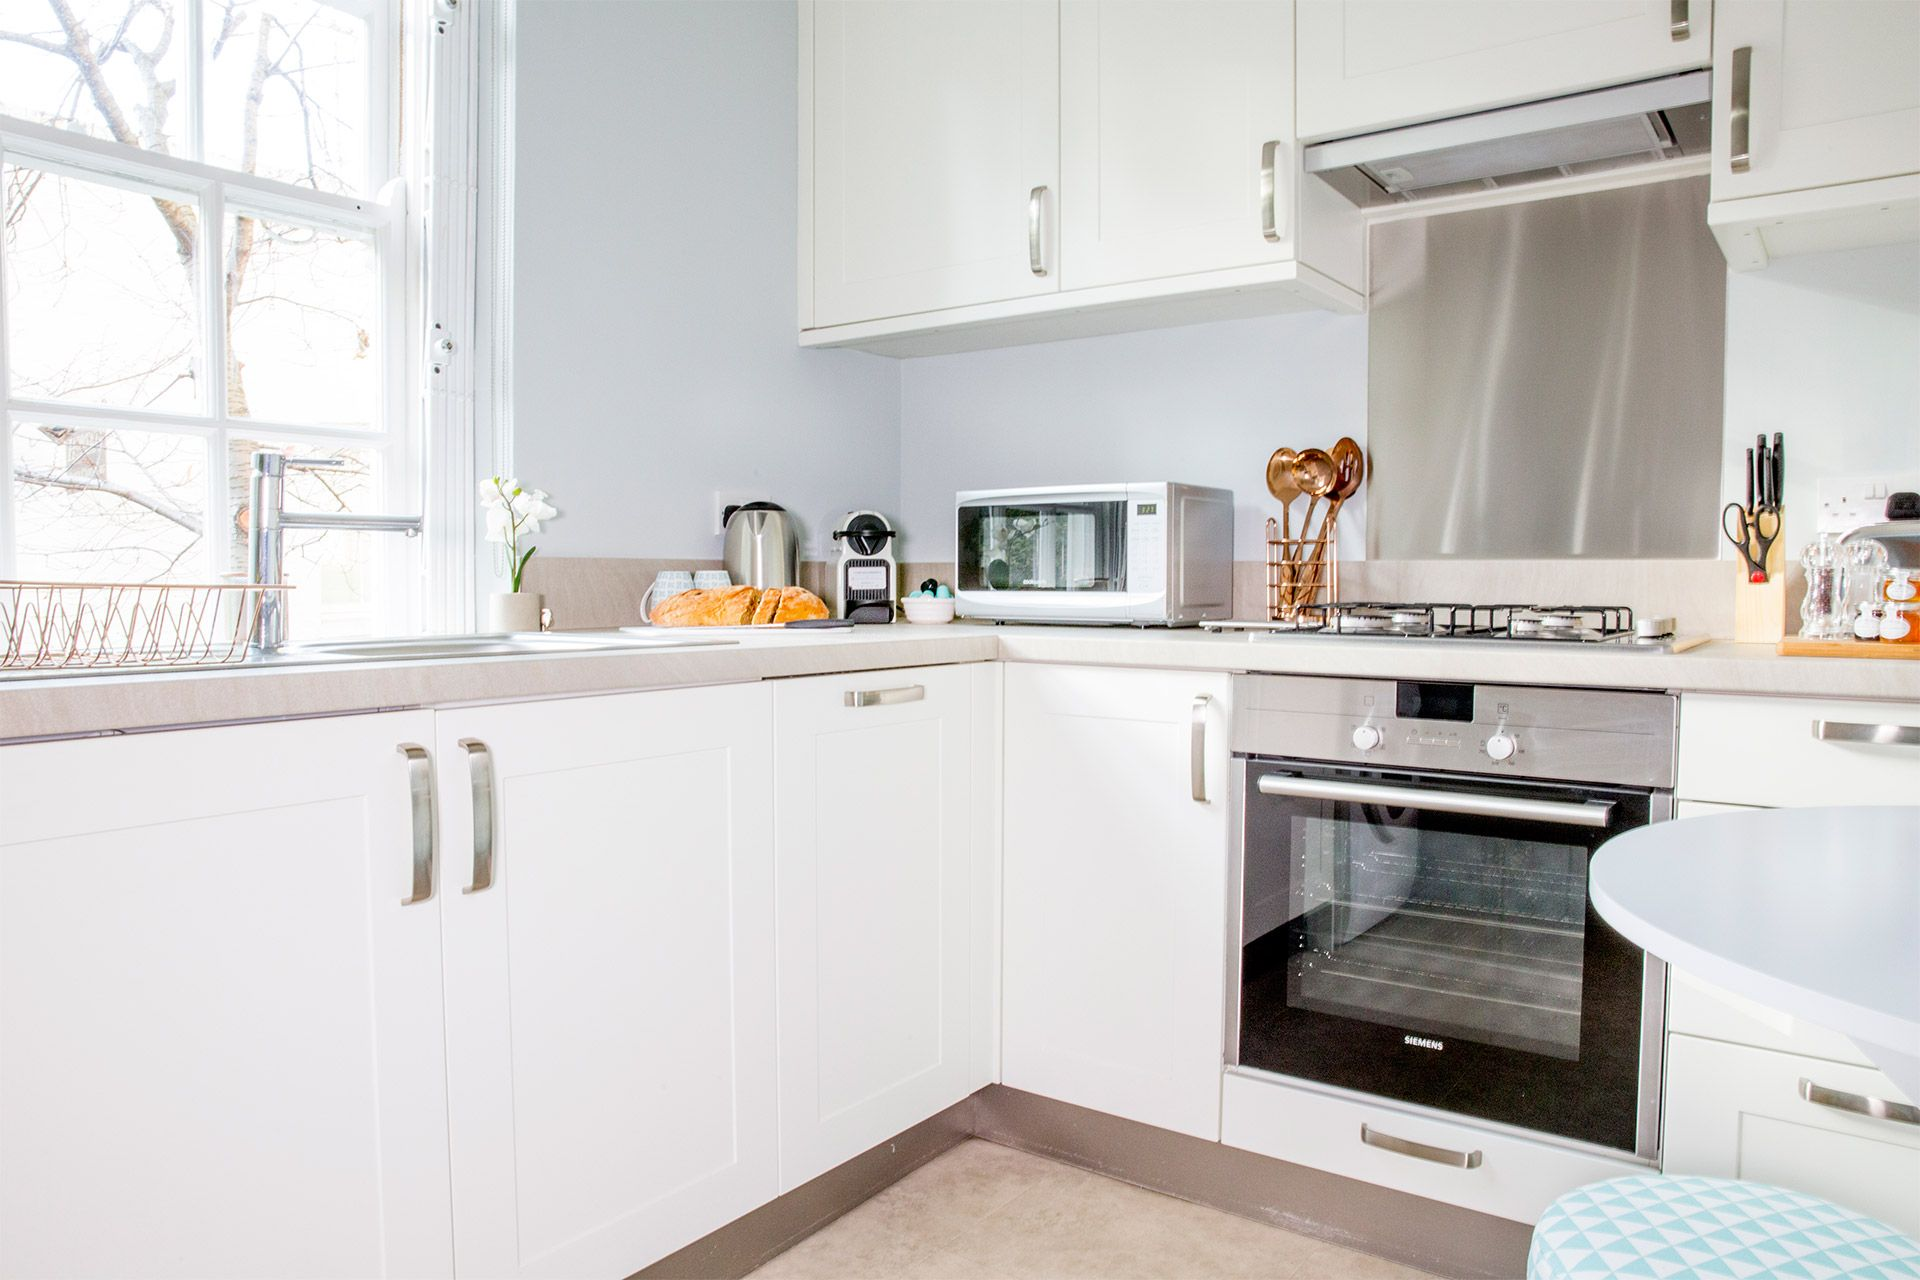 Fully equipped kitchen of the Gordon vacation rental offered by London Perfect